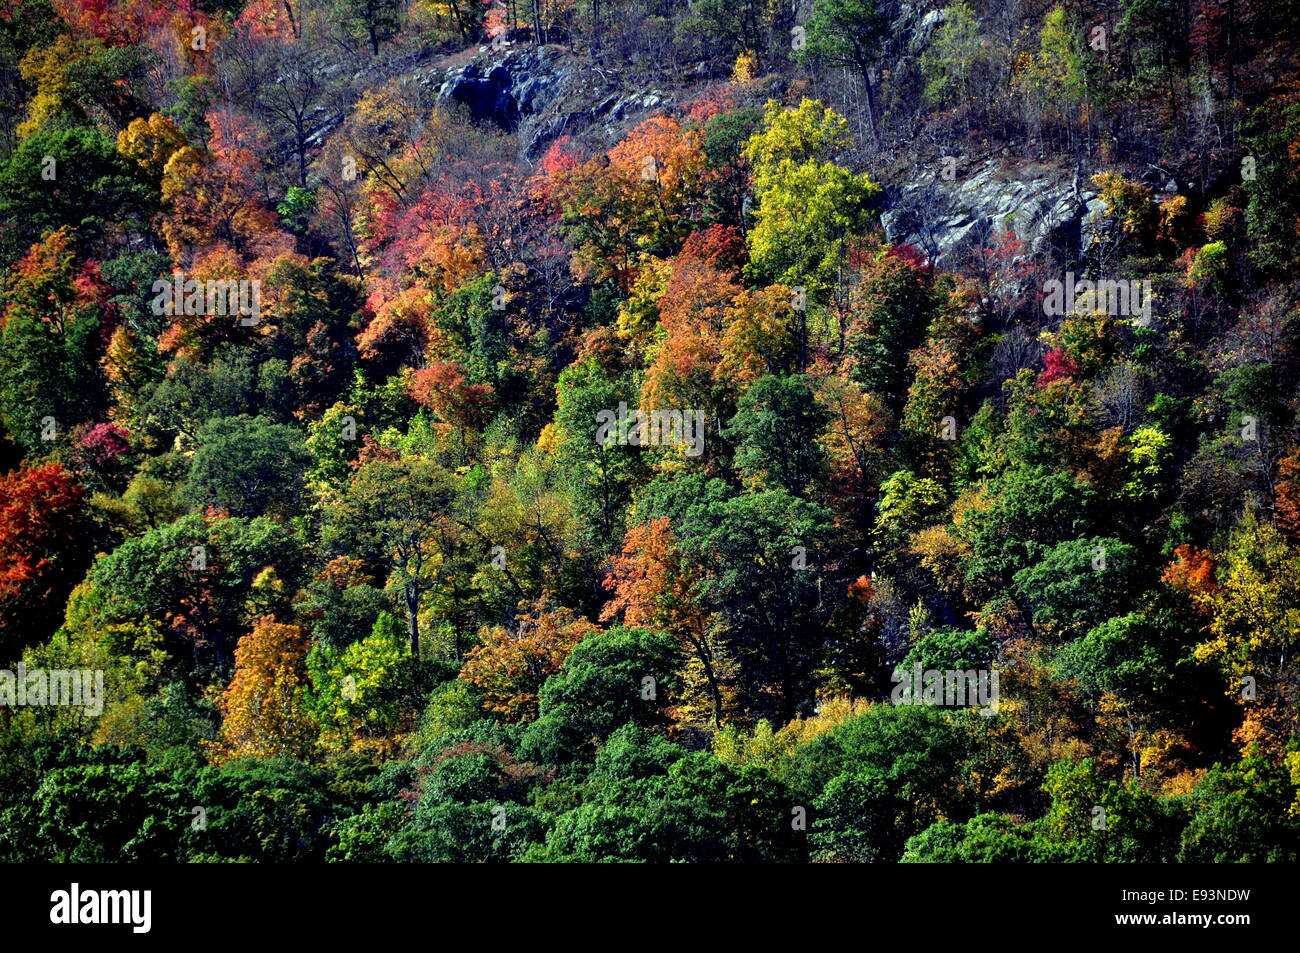 Cold Spring, NY:  Masses of dazzling Autumn foliage line the banks of the Hudson River viewed from the Town Dock - Stock Image